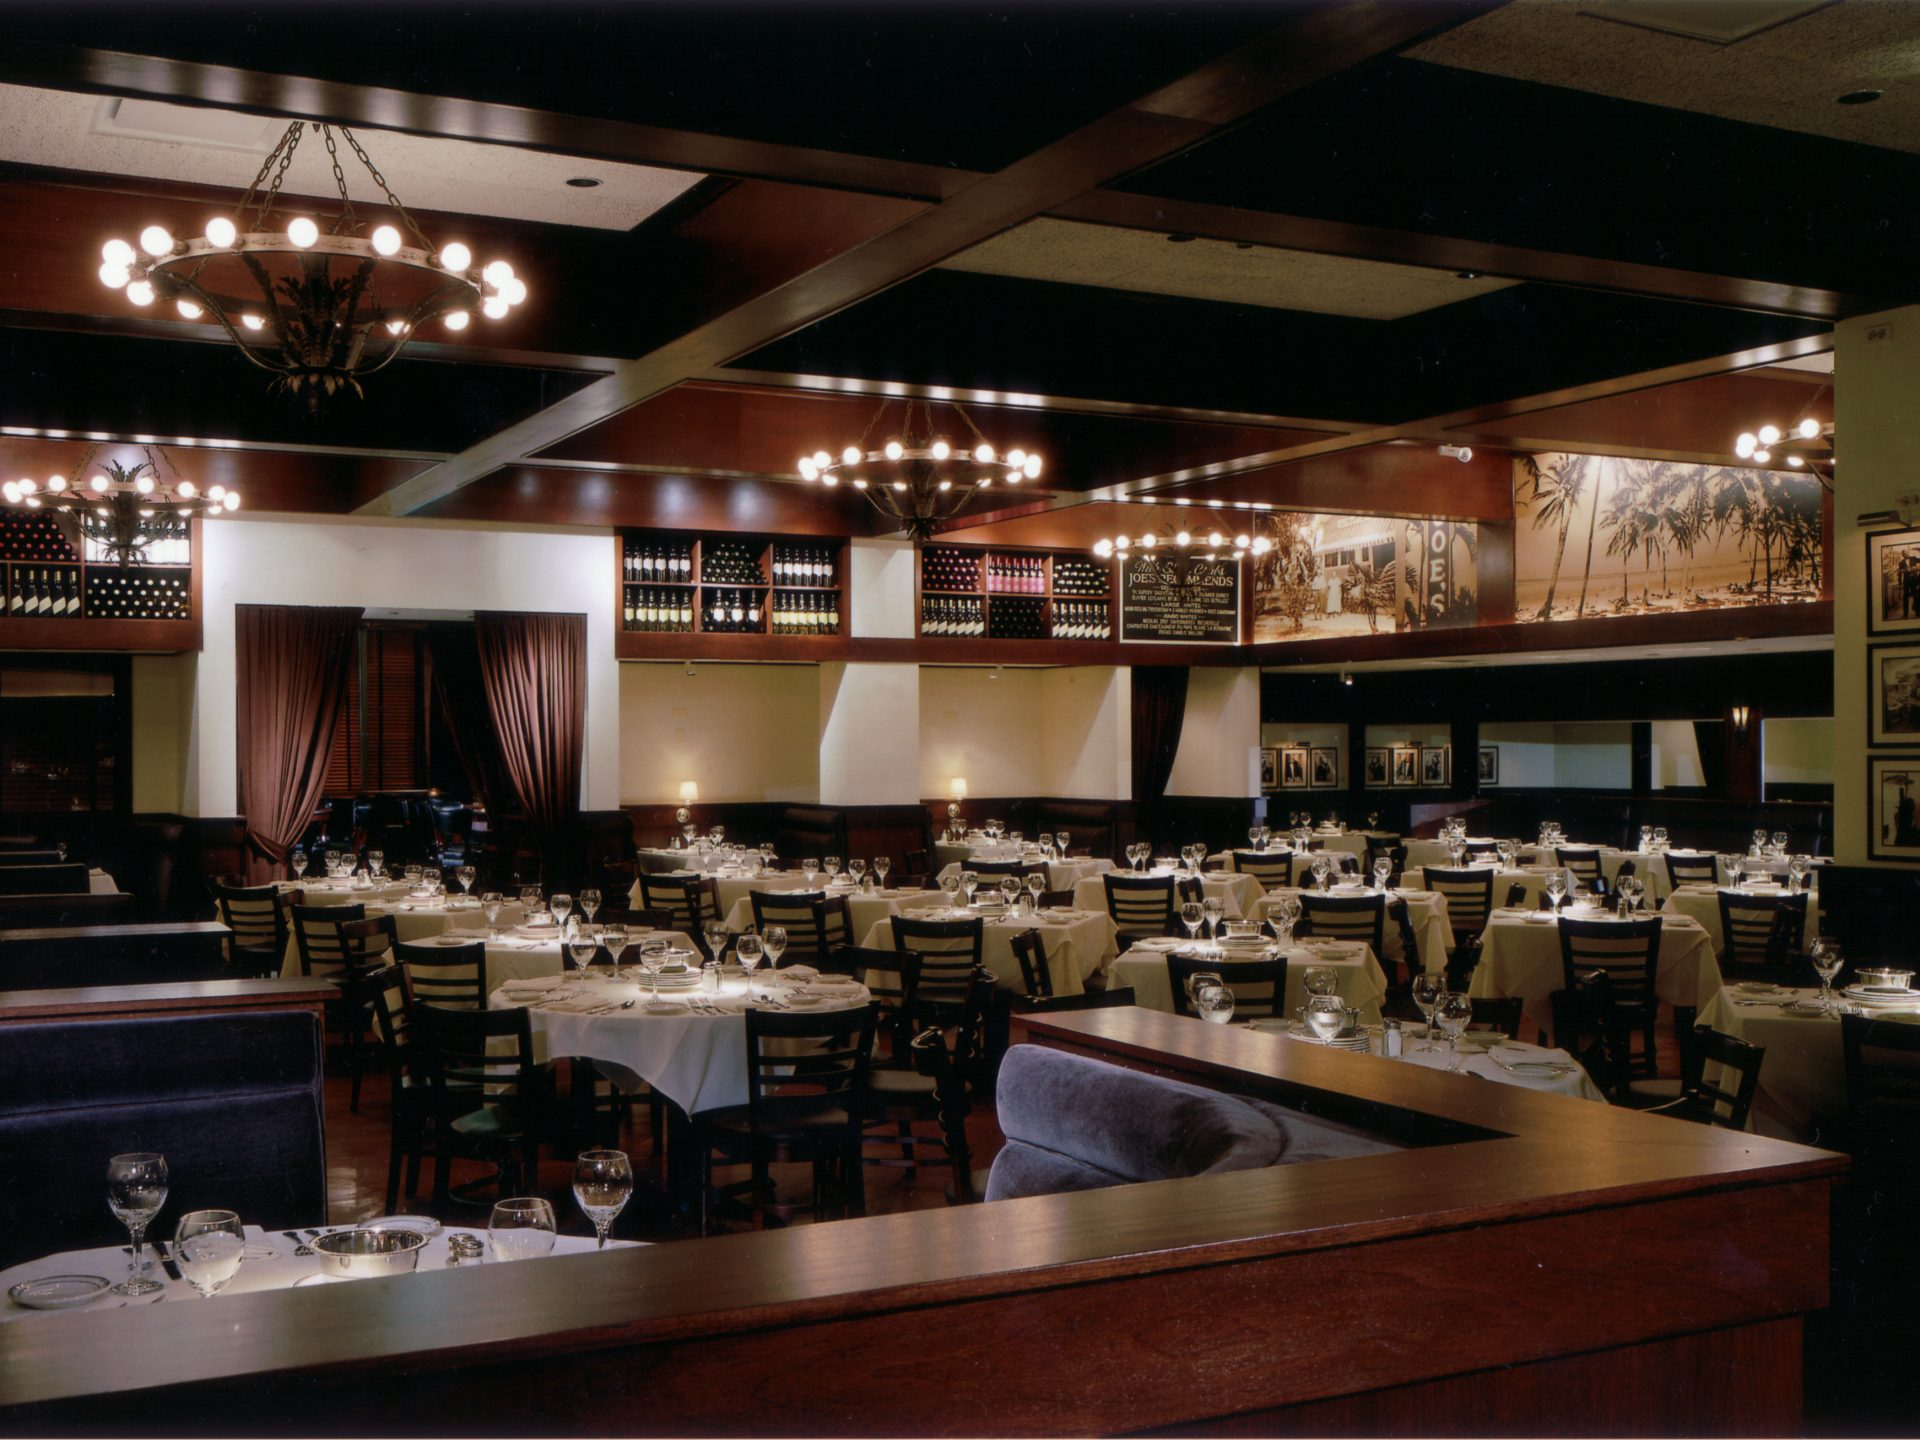 Joe S Seafood Prime Steaks And Stone Crabs Detureculsign